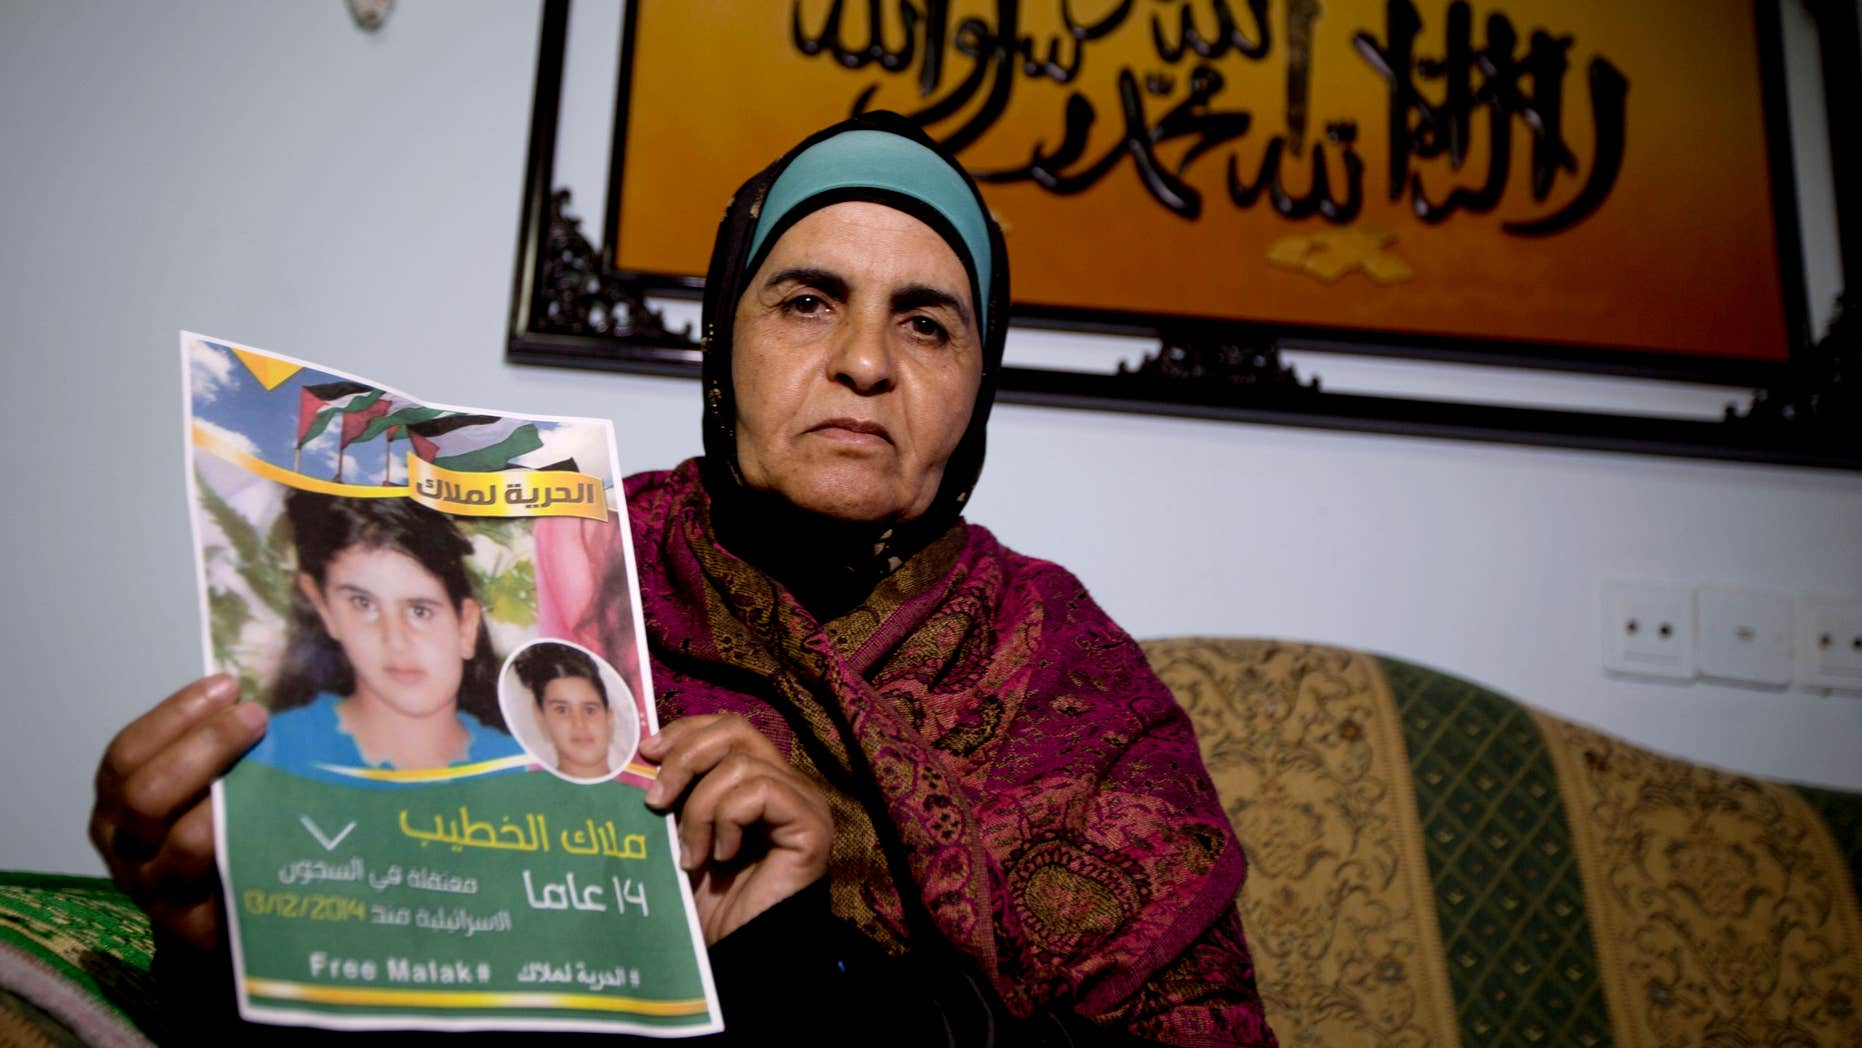 Jan. 27, 2015: Palestinian Khawla Al-Khatib, holds a poster of her 14-year-old daughter Malak al-Khatib, detained in Israel, in the village of Beitin near the West Bank city of Ramallah.